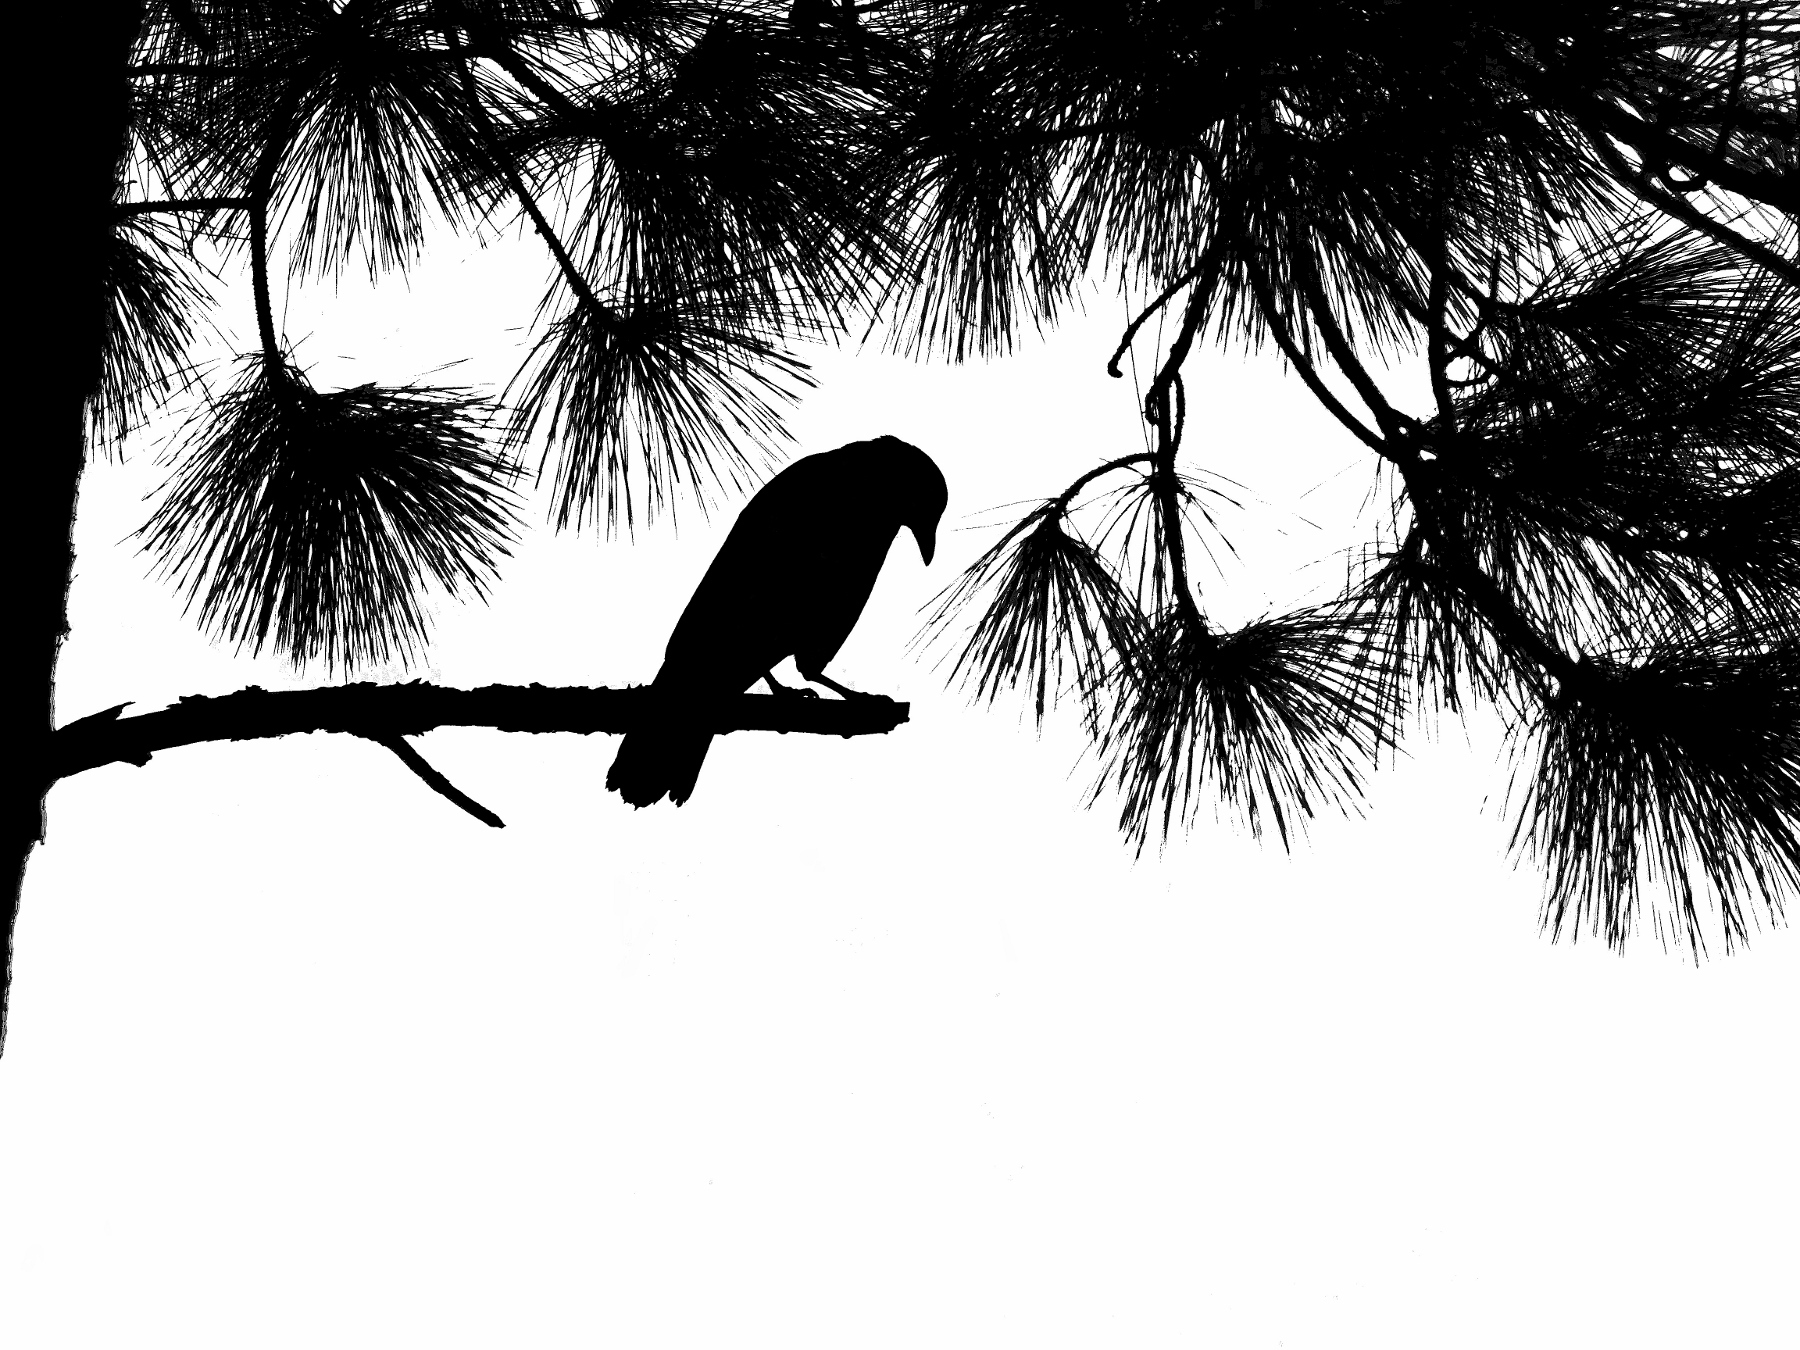 """""""Mr. Crow in Mourning,"""" photographic digital art printed on canvas, by Rick de Yampert"""